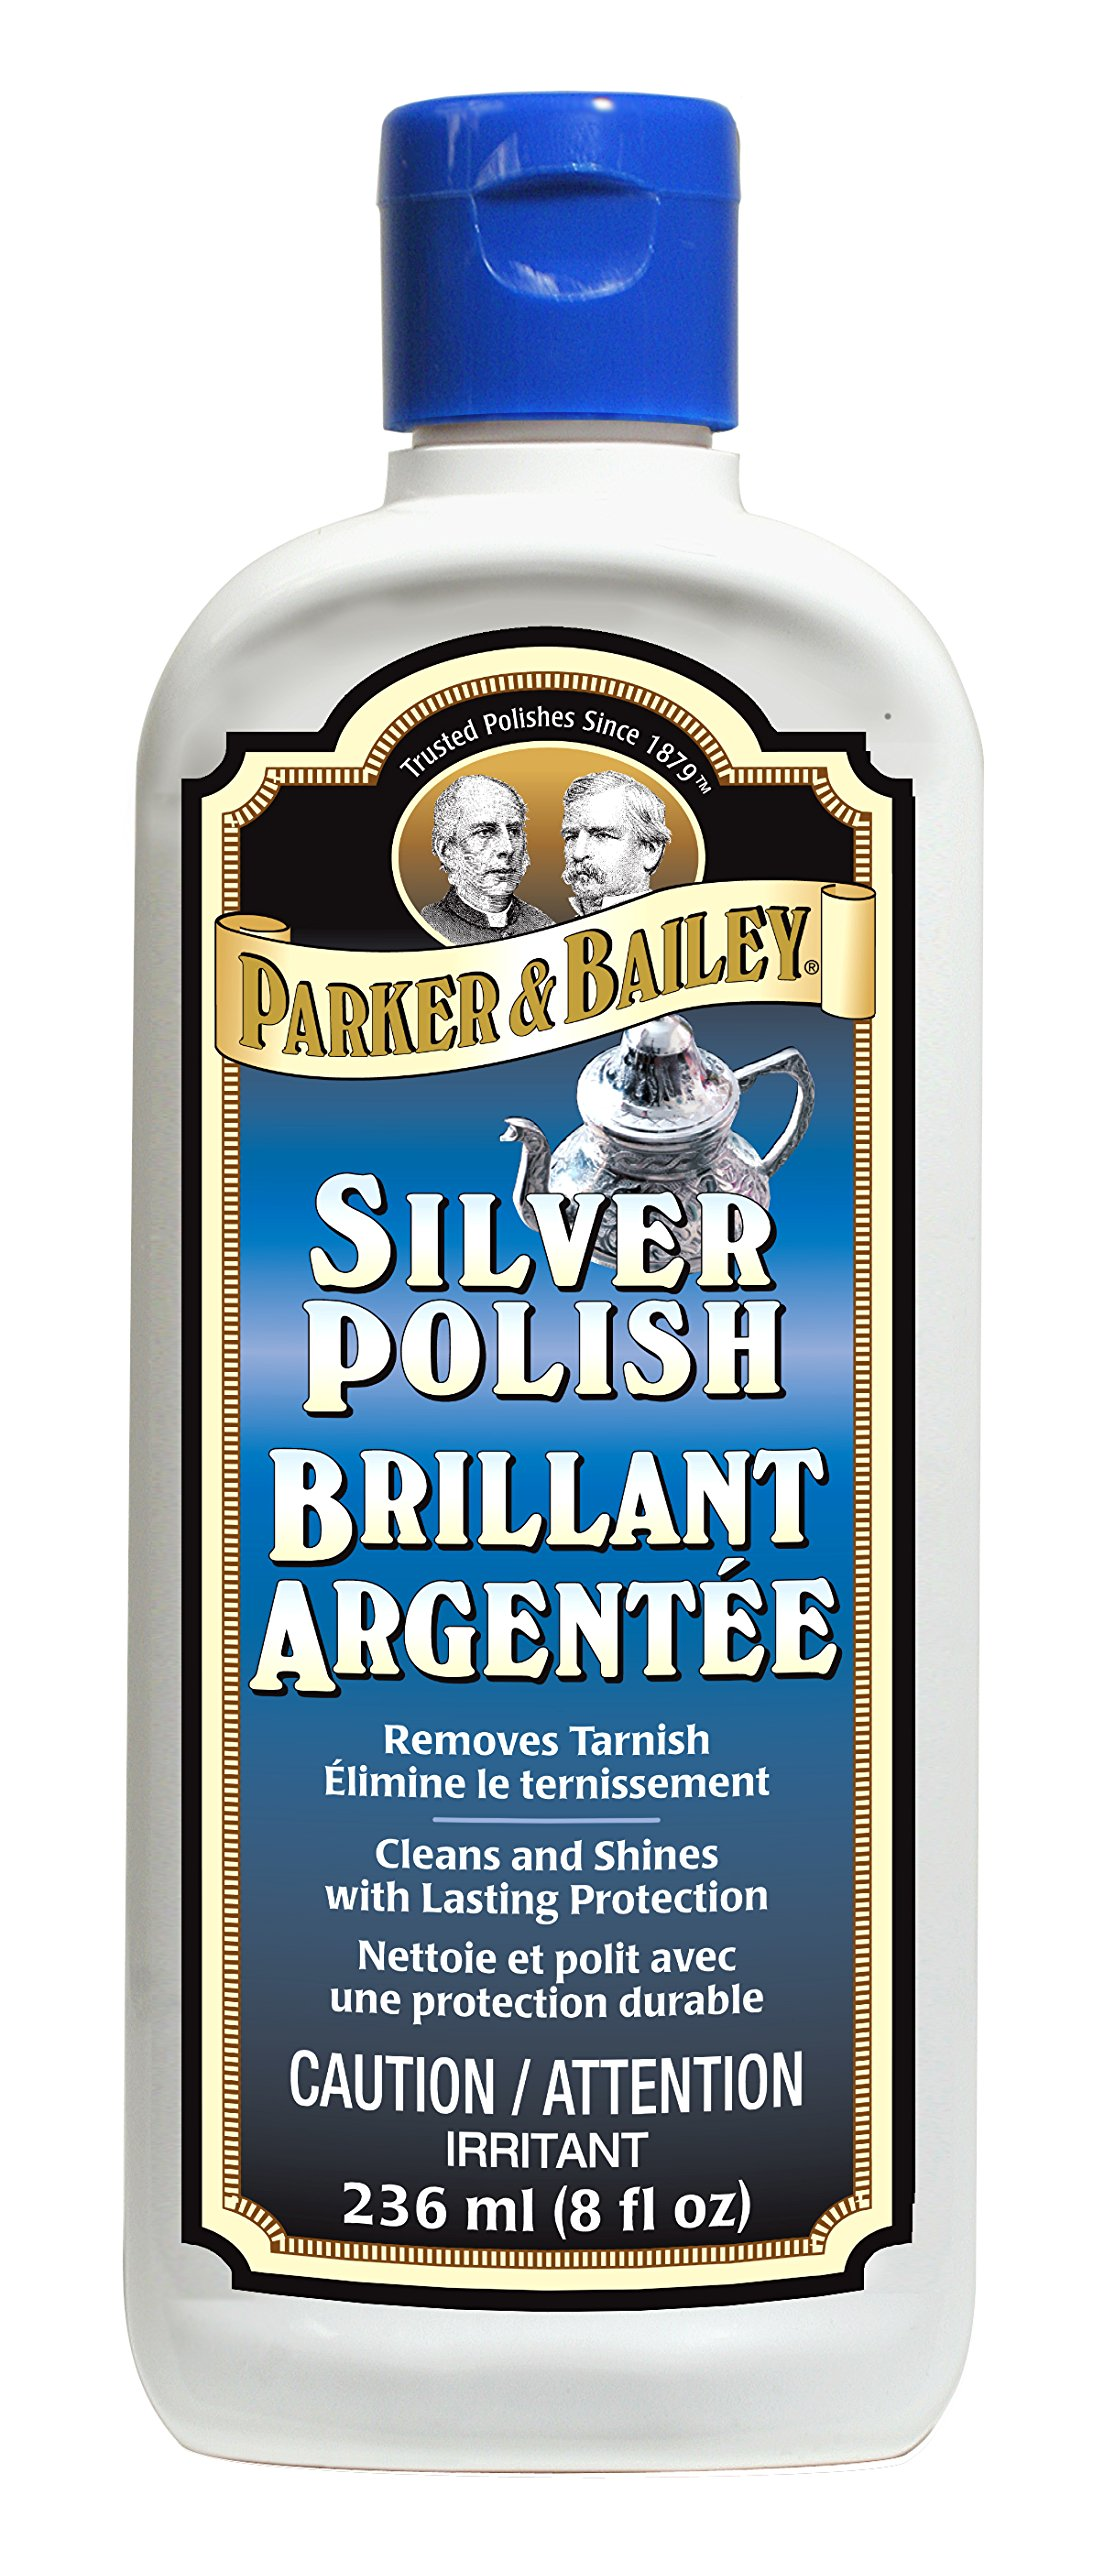 Parker & Bailey Silver Polish